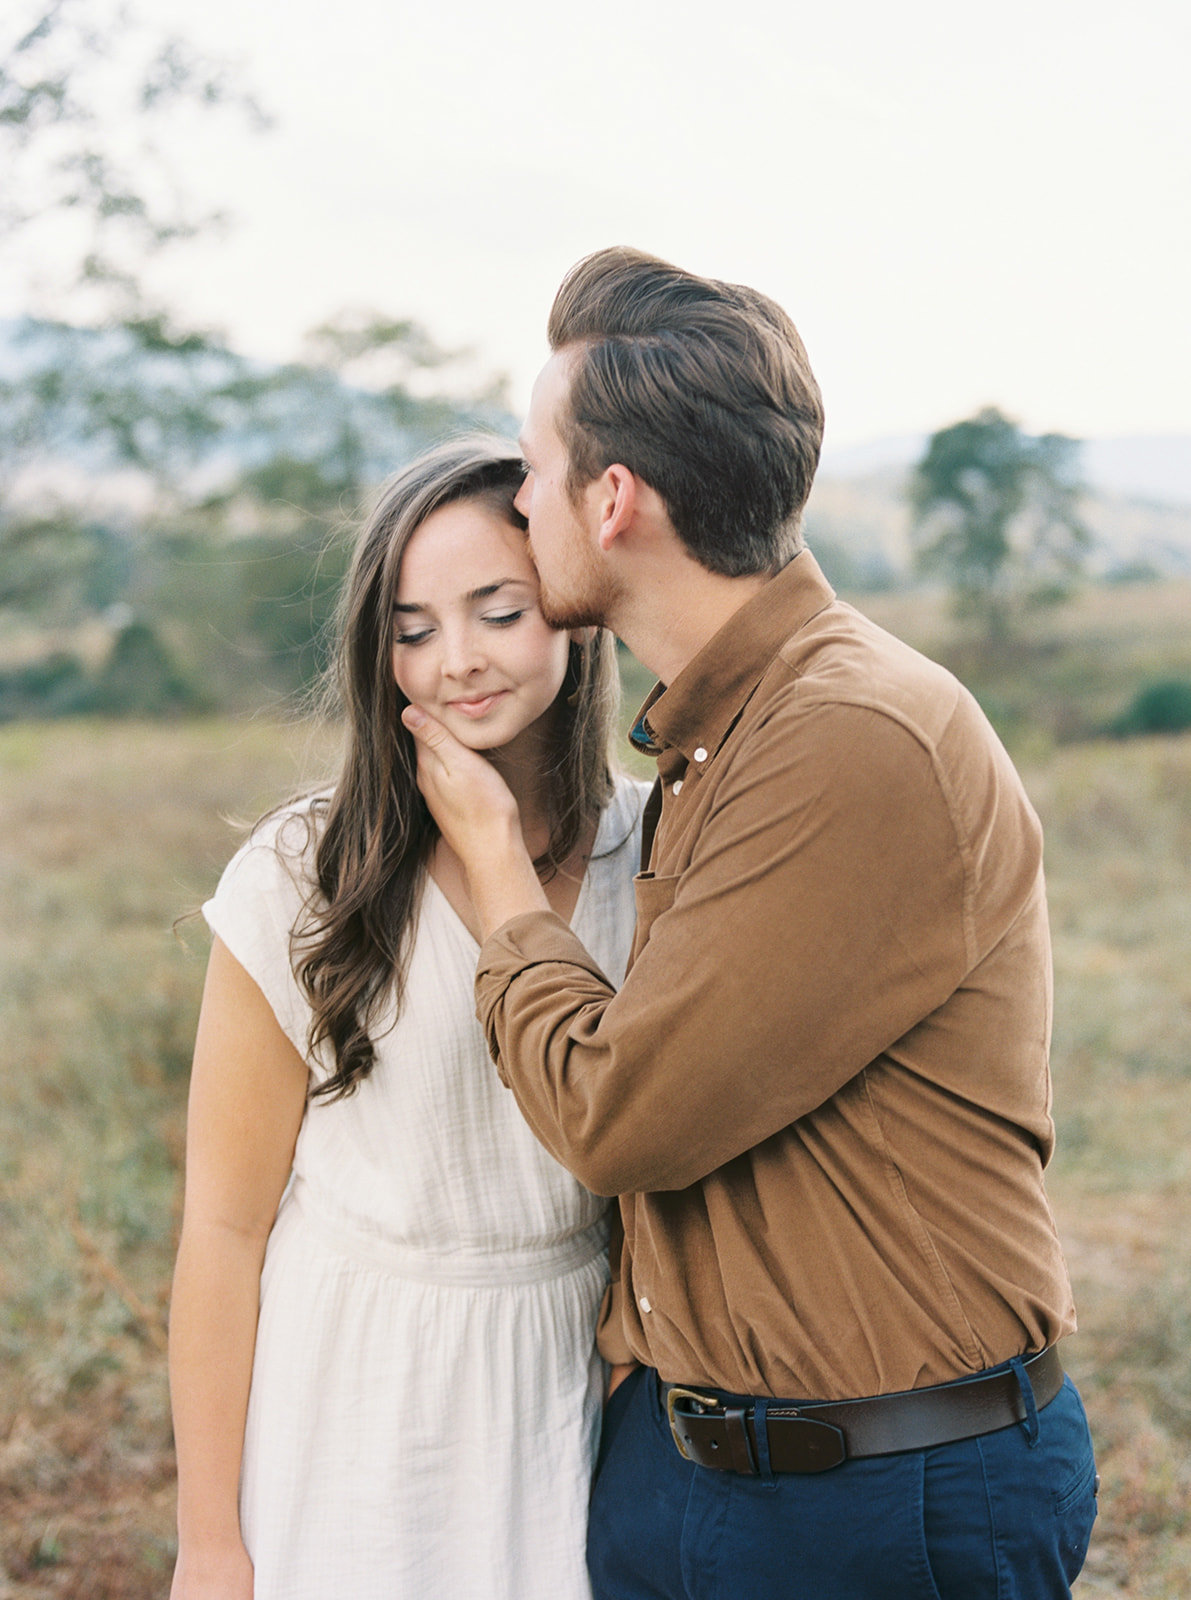 michela-brooke-photo-maryclaire-caleb-farm-engagement-12_websize